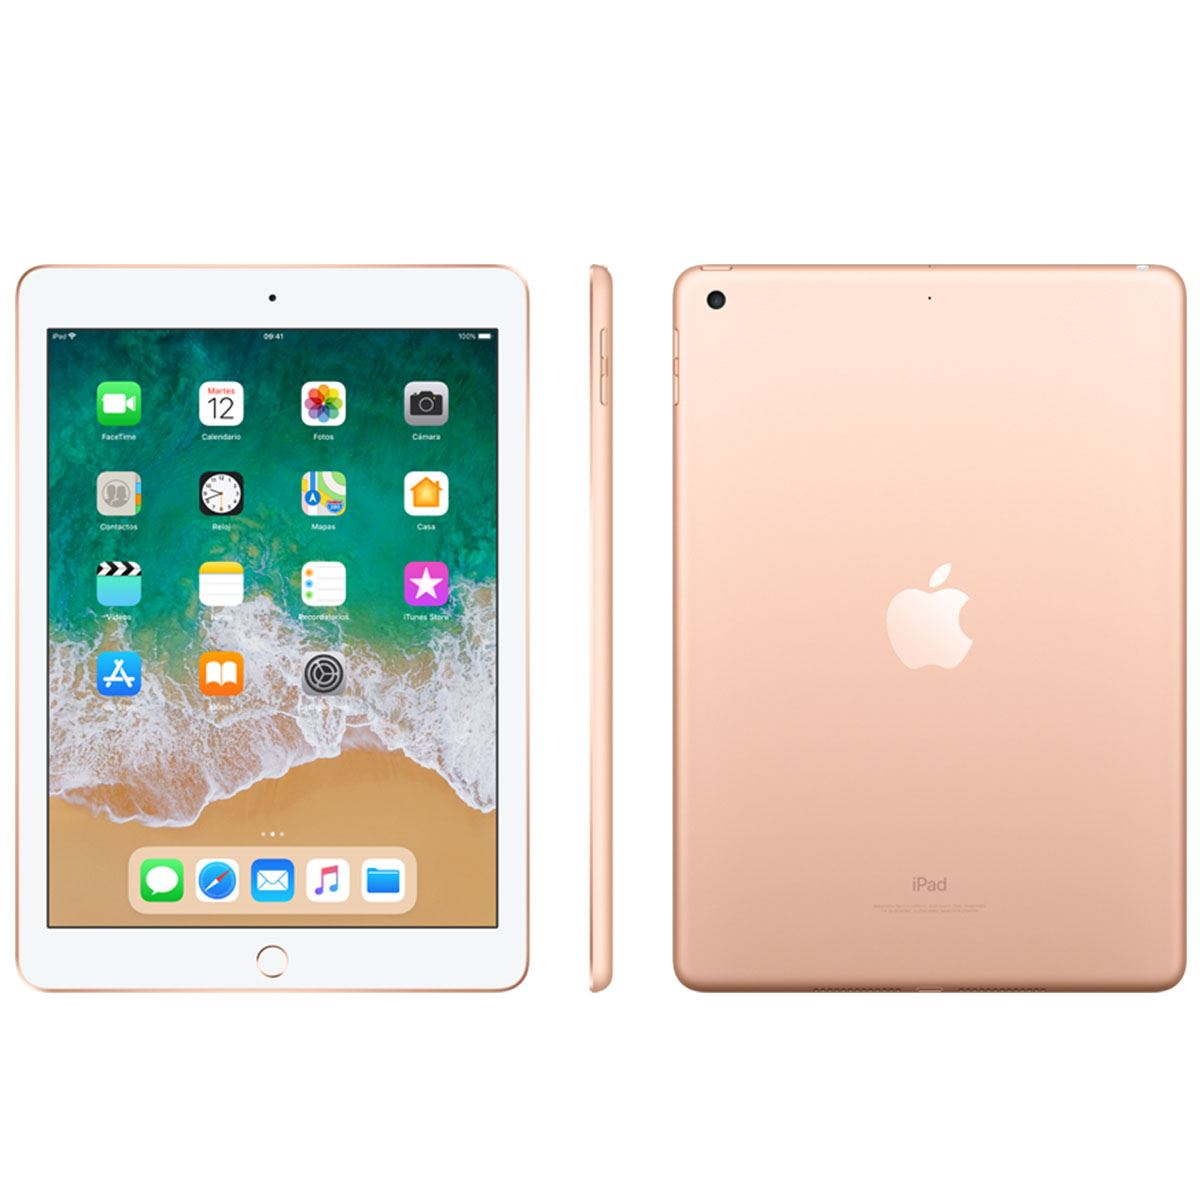 Ipad wi-fi 32gb gold  - Sanborns